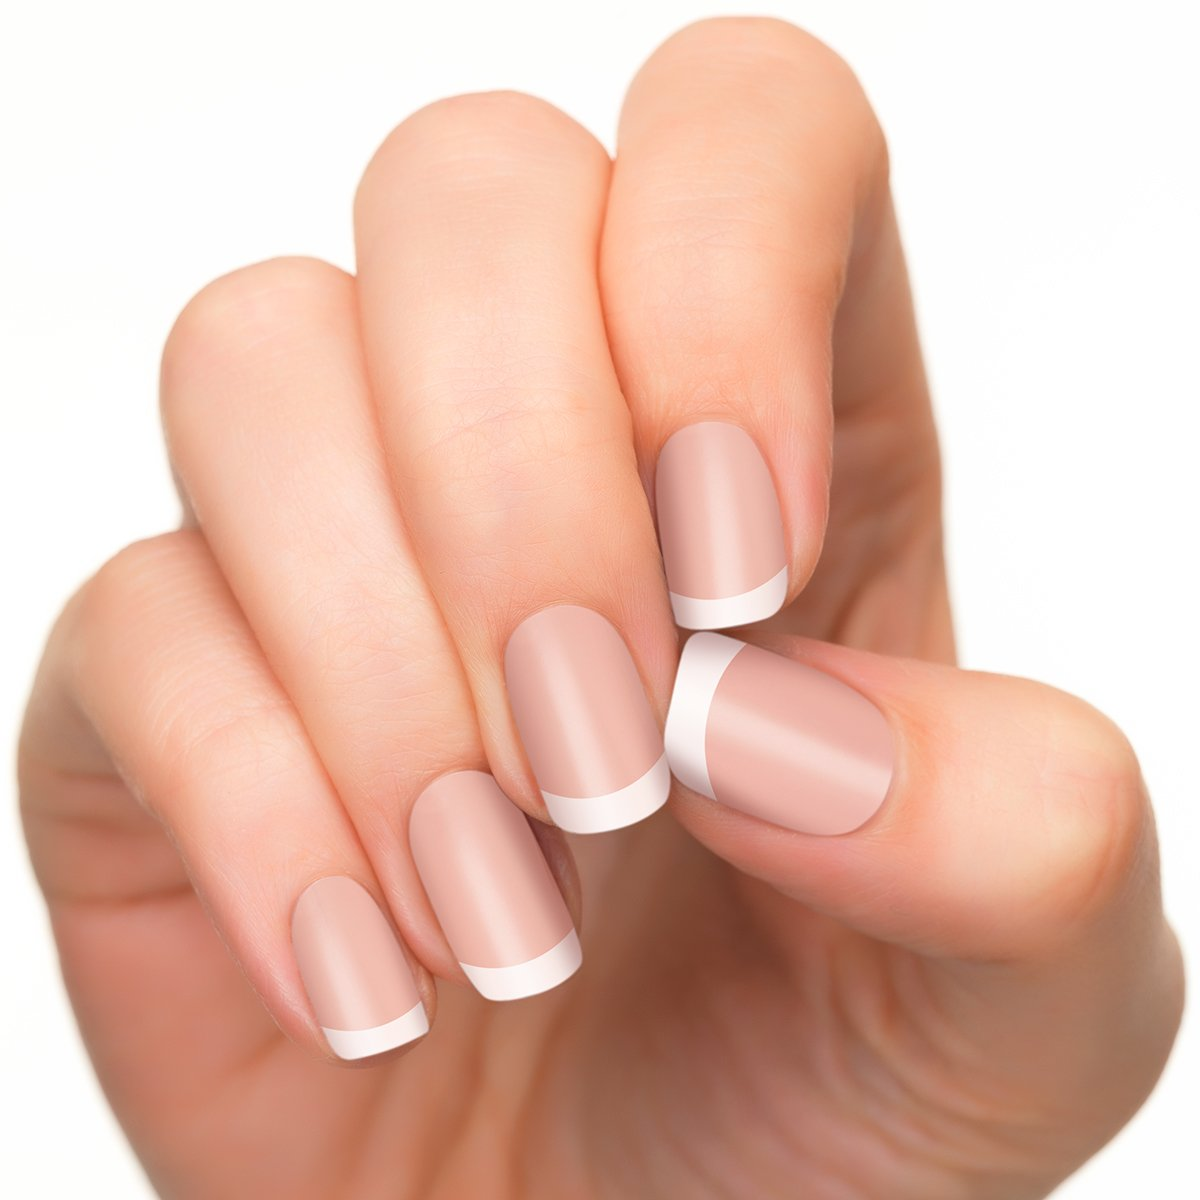 Amazon.com: Incoco French Manicure: Cloud Nine: Health & Personal Care